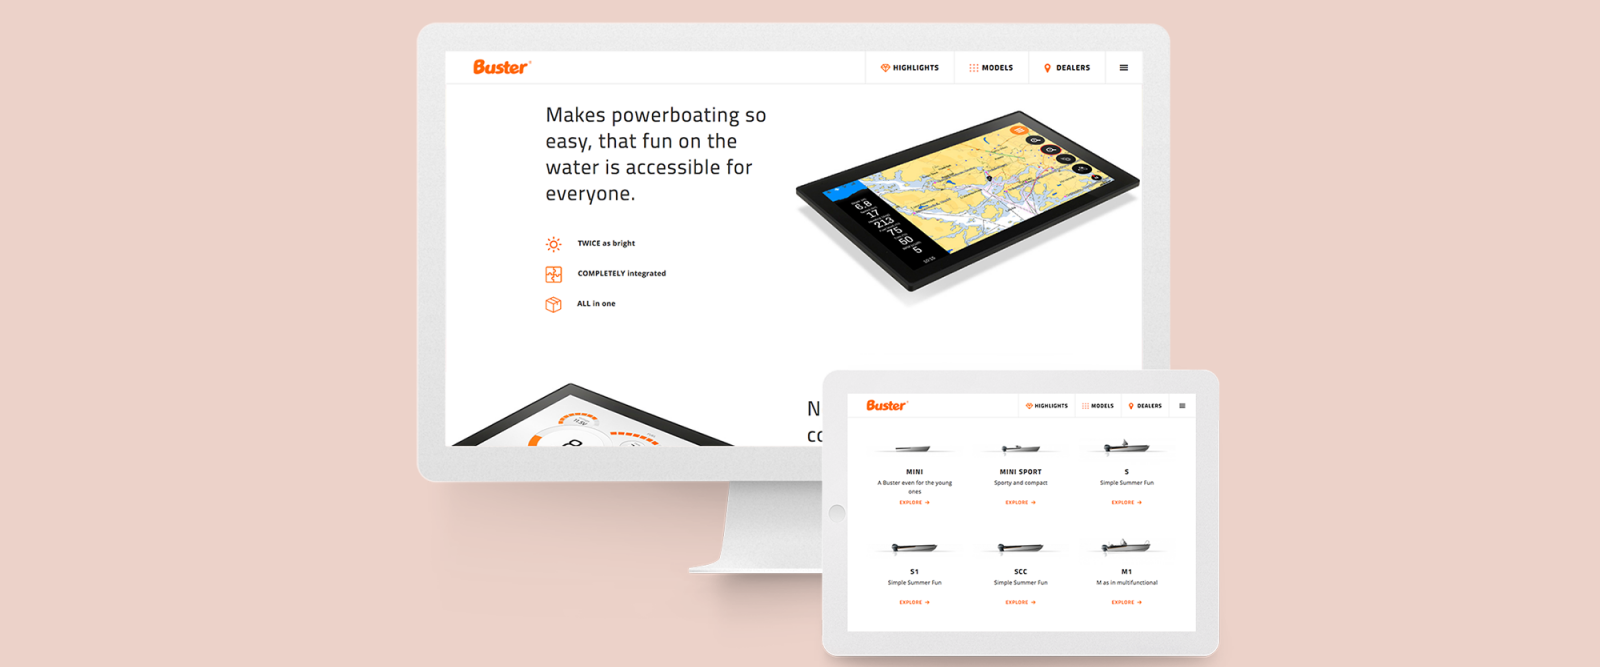 Buster website on devices